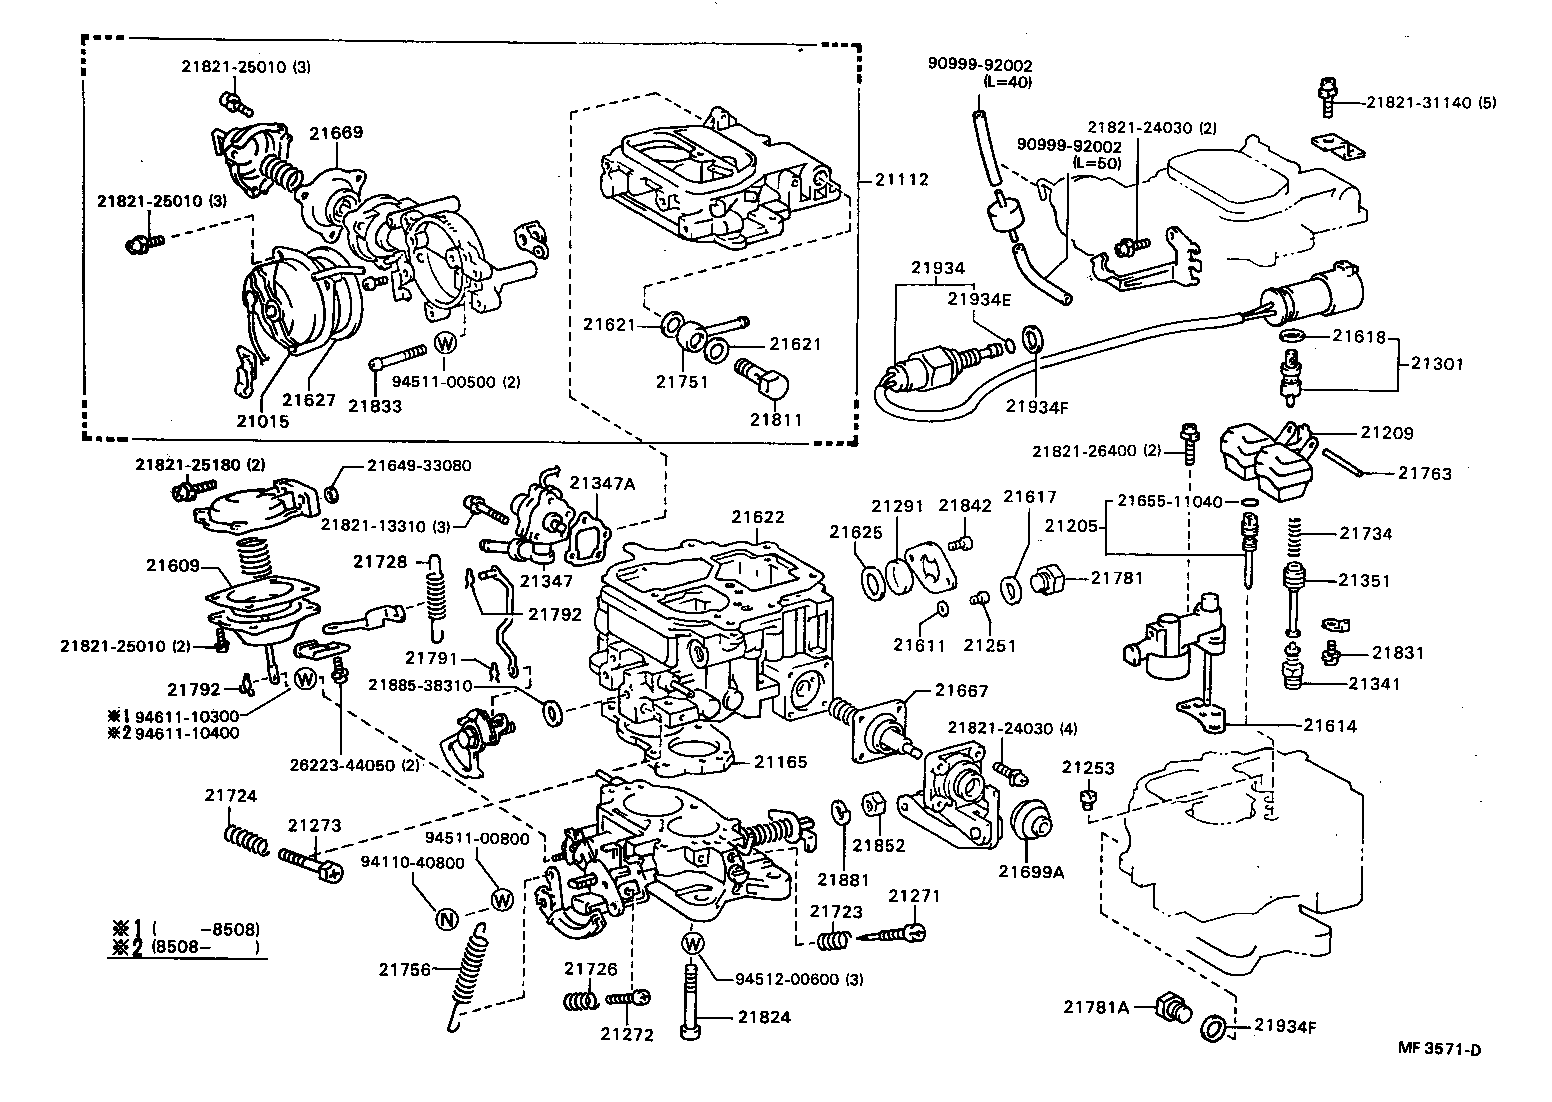 1985 Toyota Pickup Carburetor Diagram http://www.japan